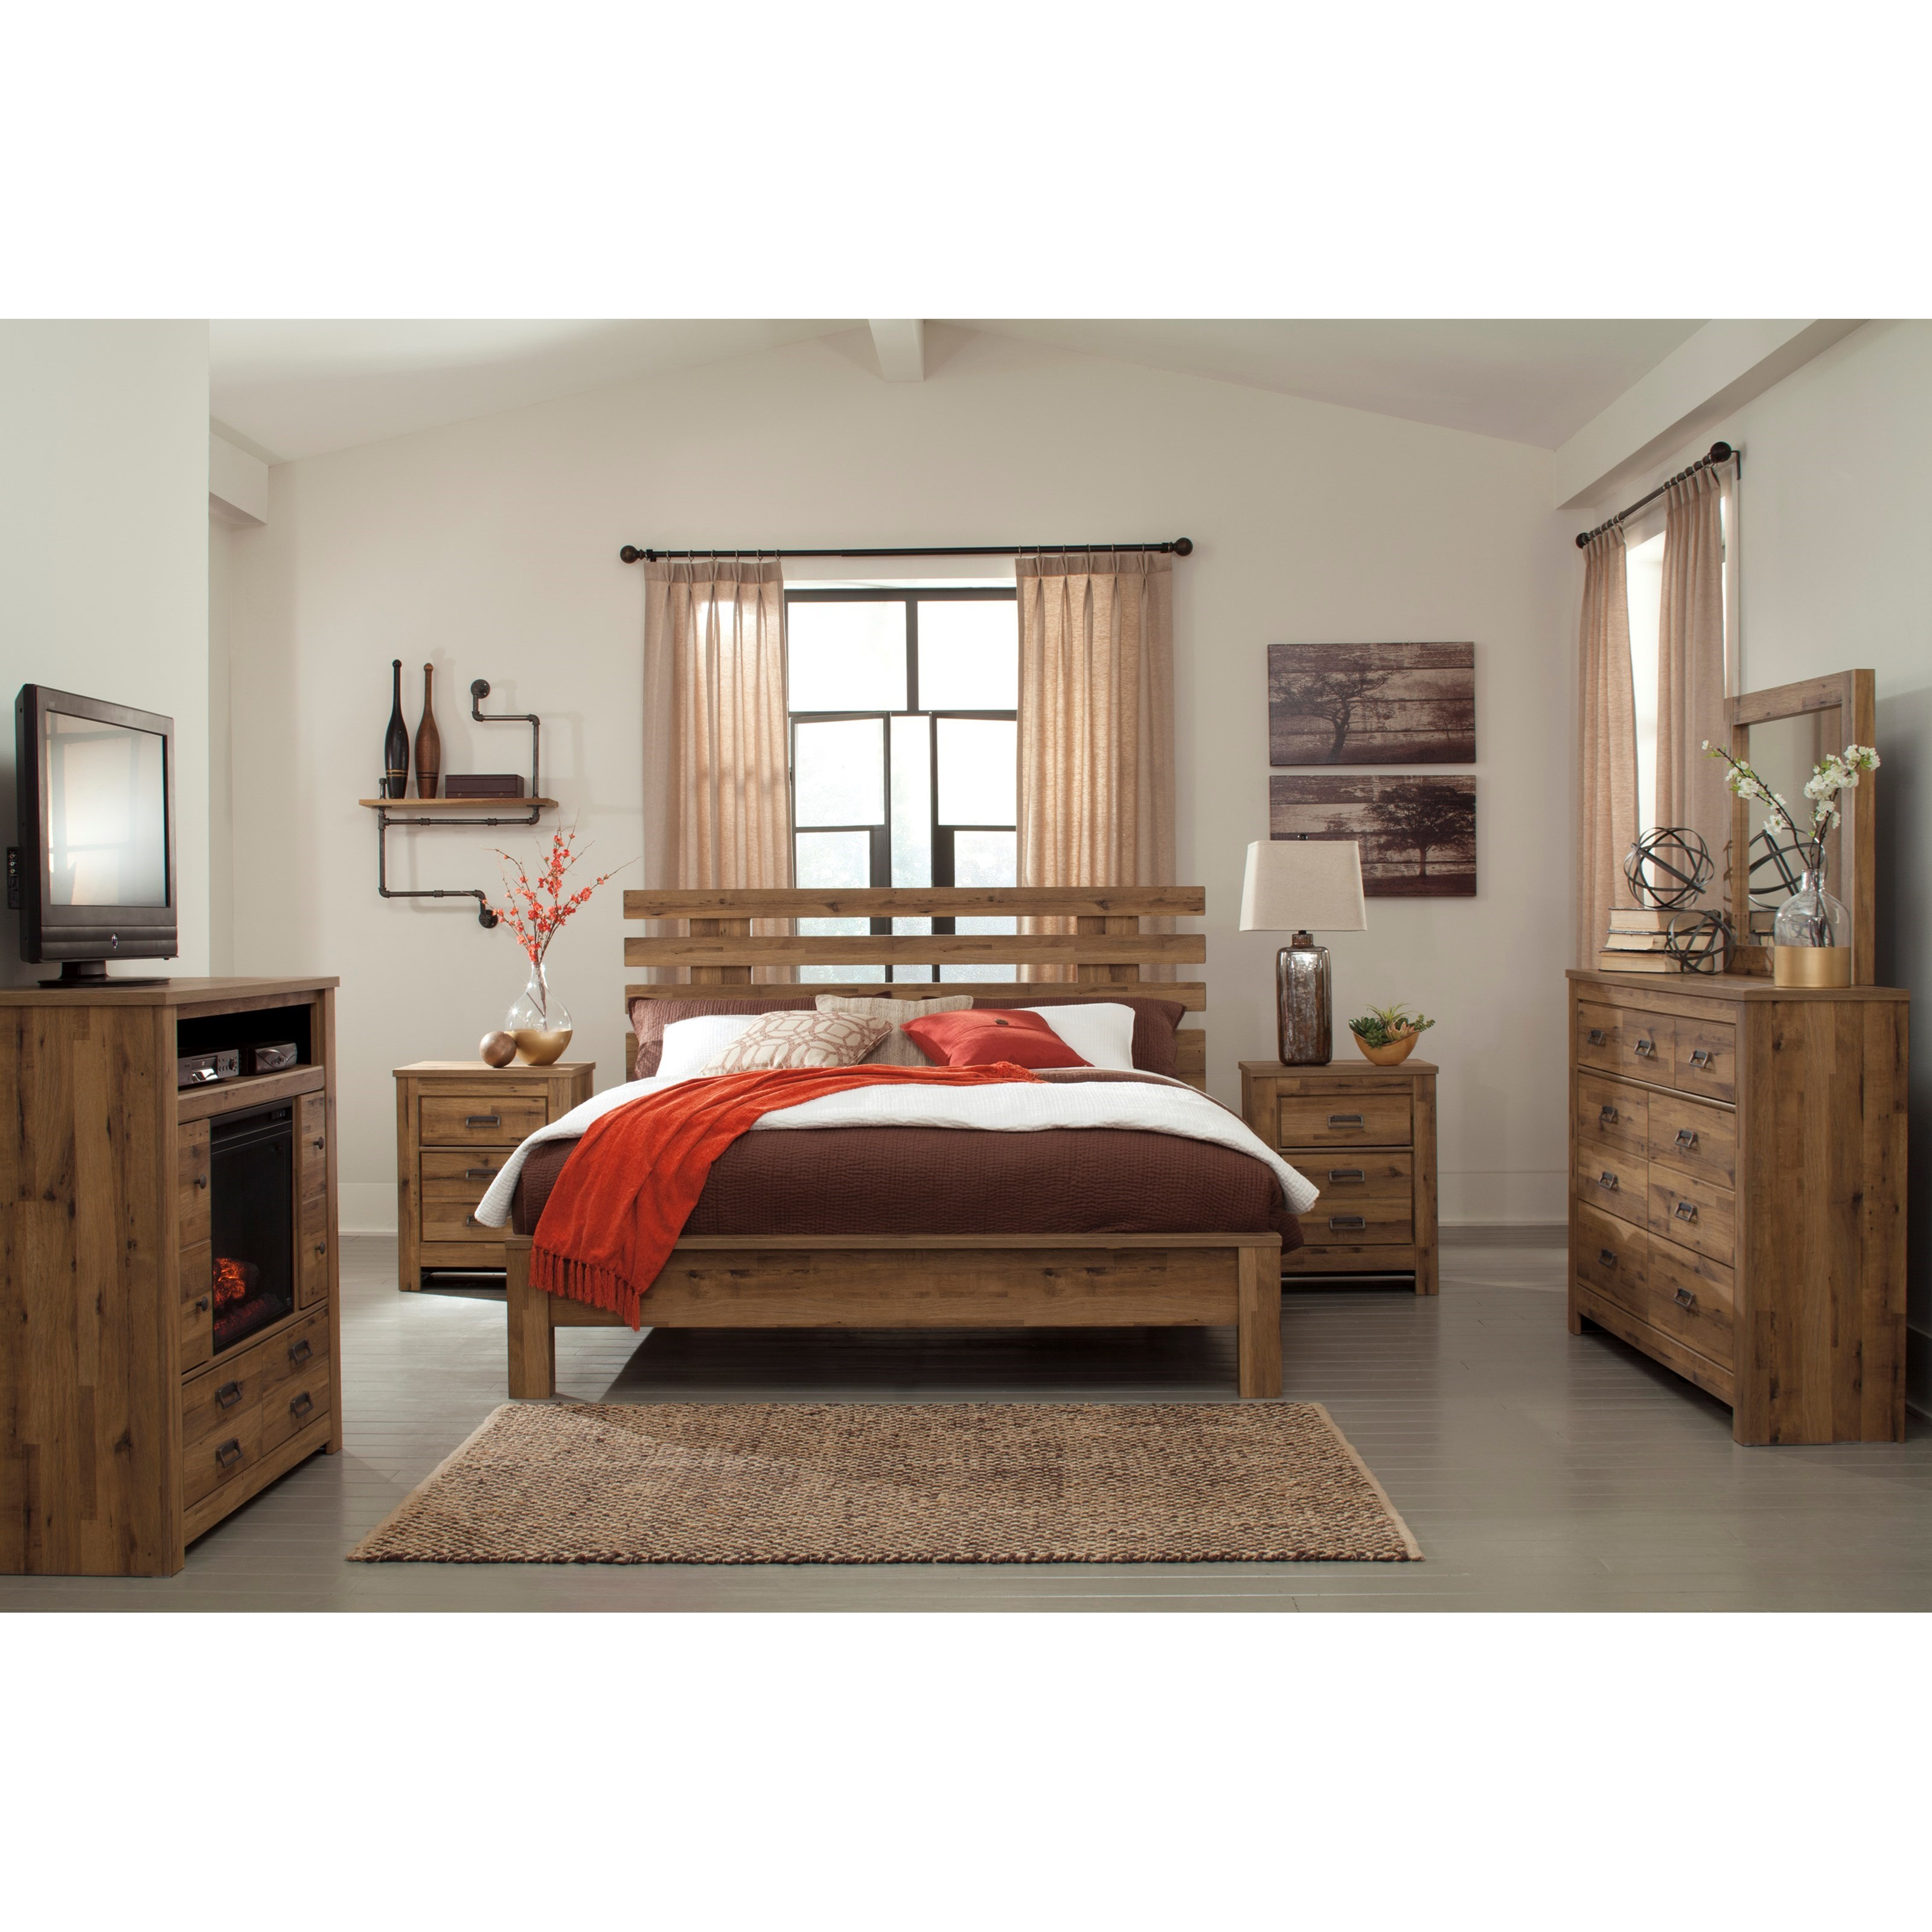 Signature Design by Ashley Cinrey King Bedroom Group - Item Number: B369 K Bedroom Group 3